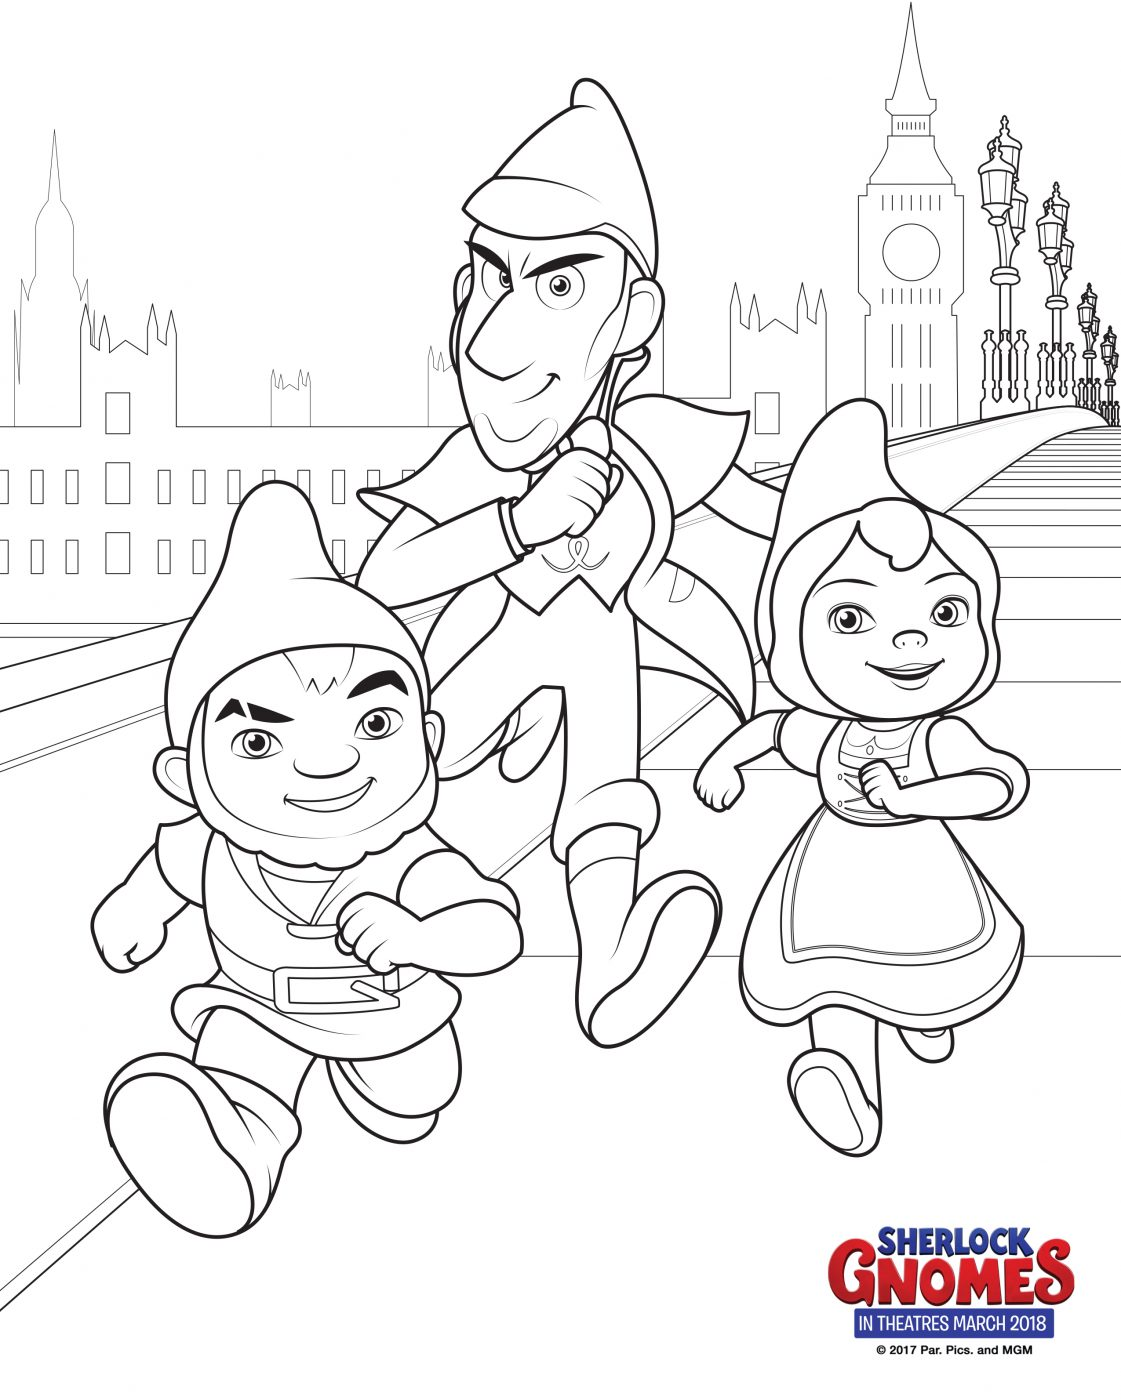 Sherlock Gnomes Coloring Pages + Books | The Review Wire